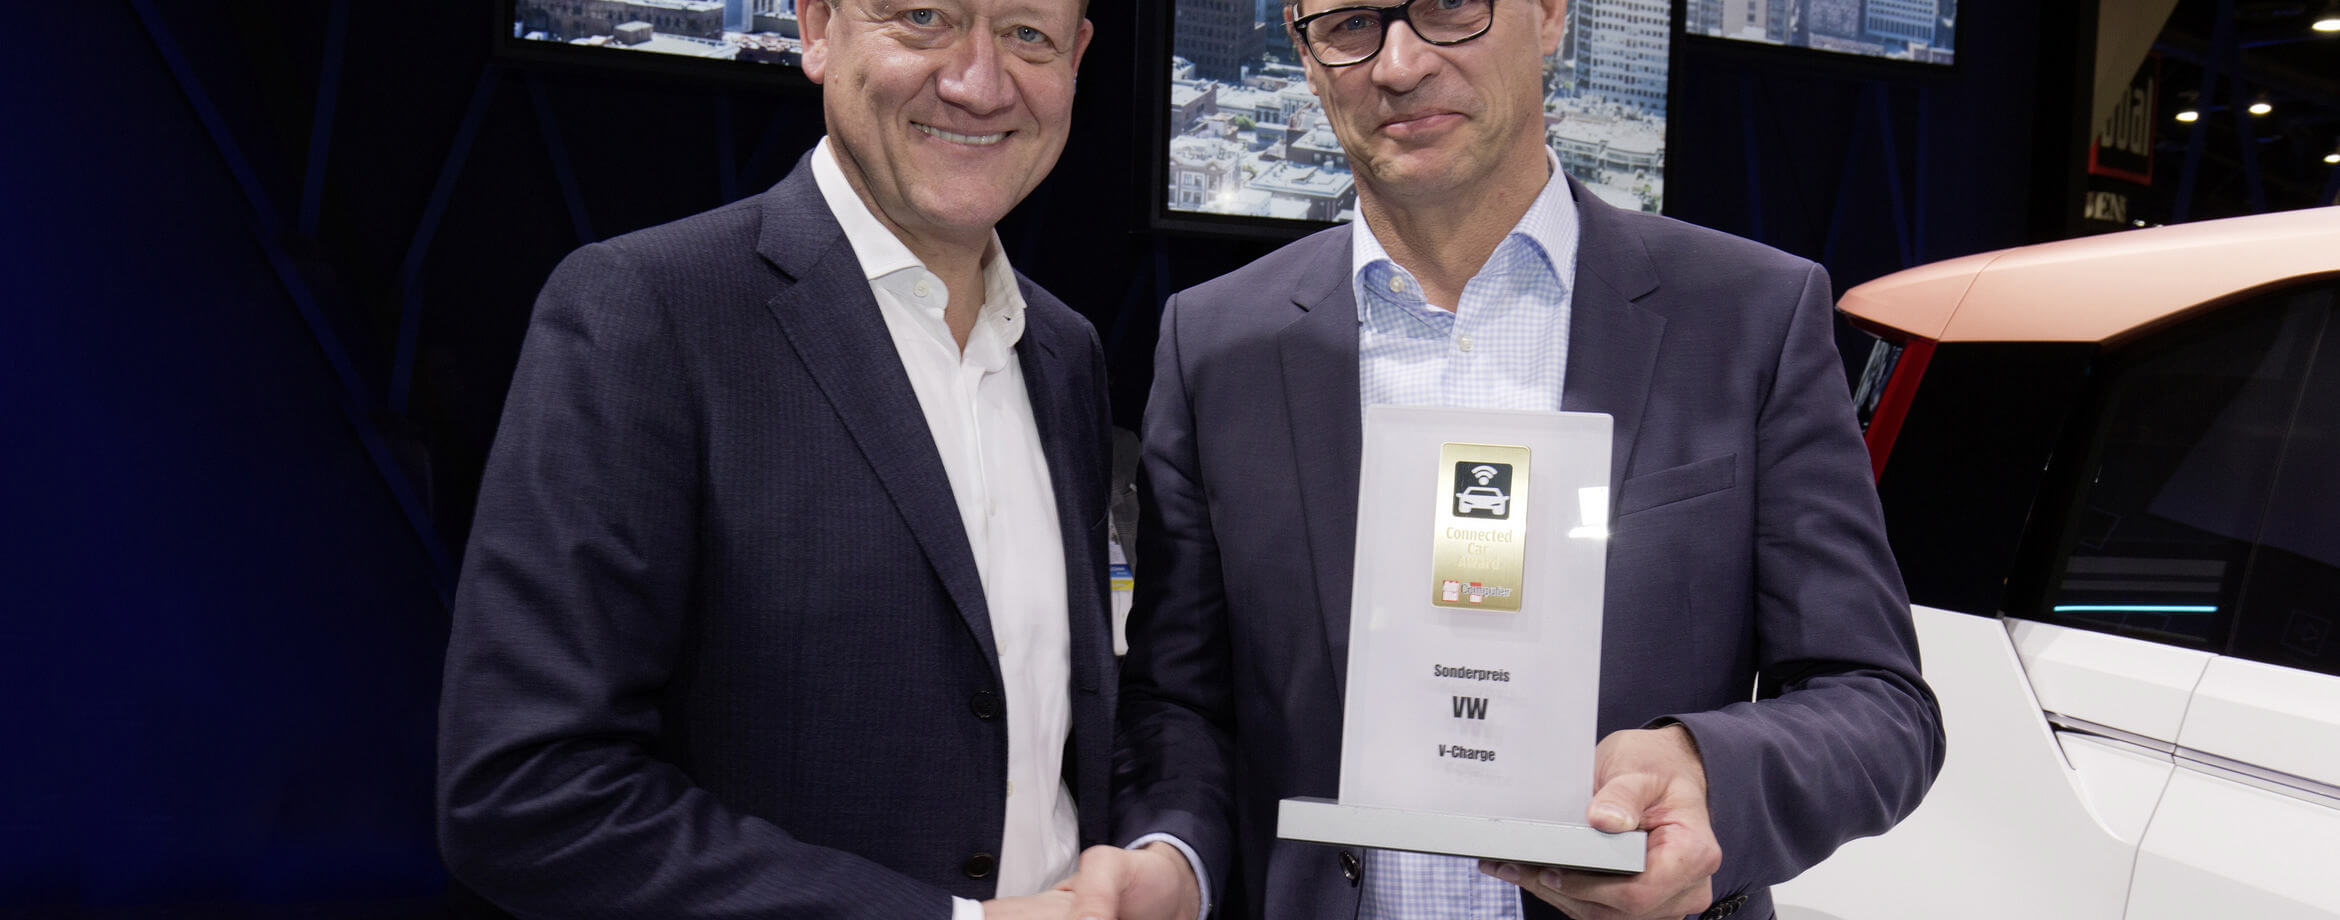 Volkswagen Awards Show Connected Car